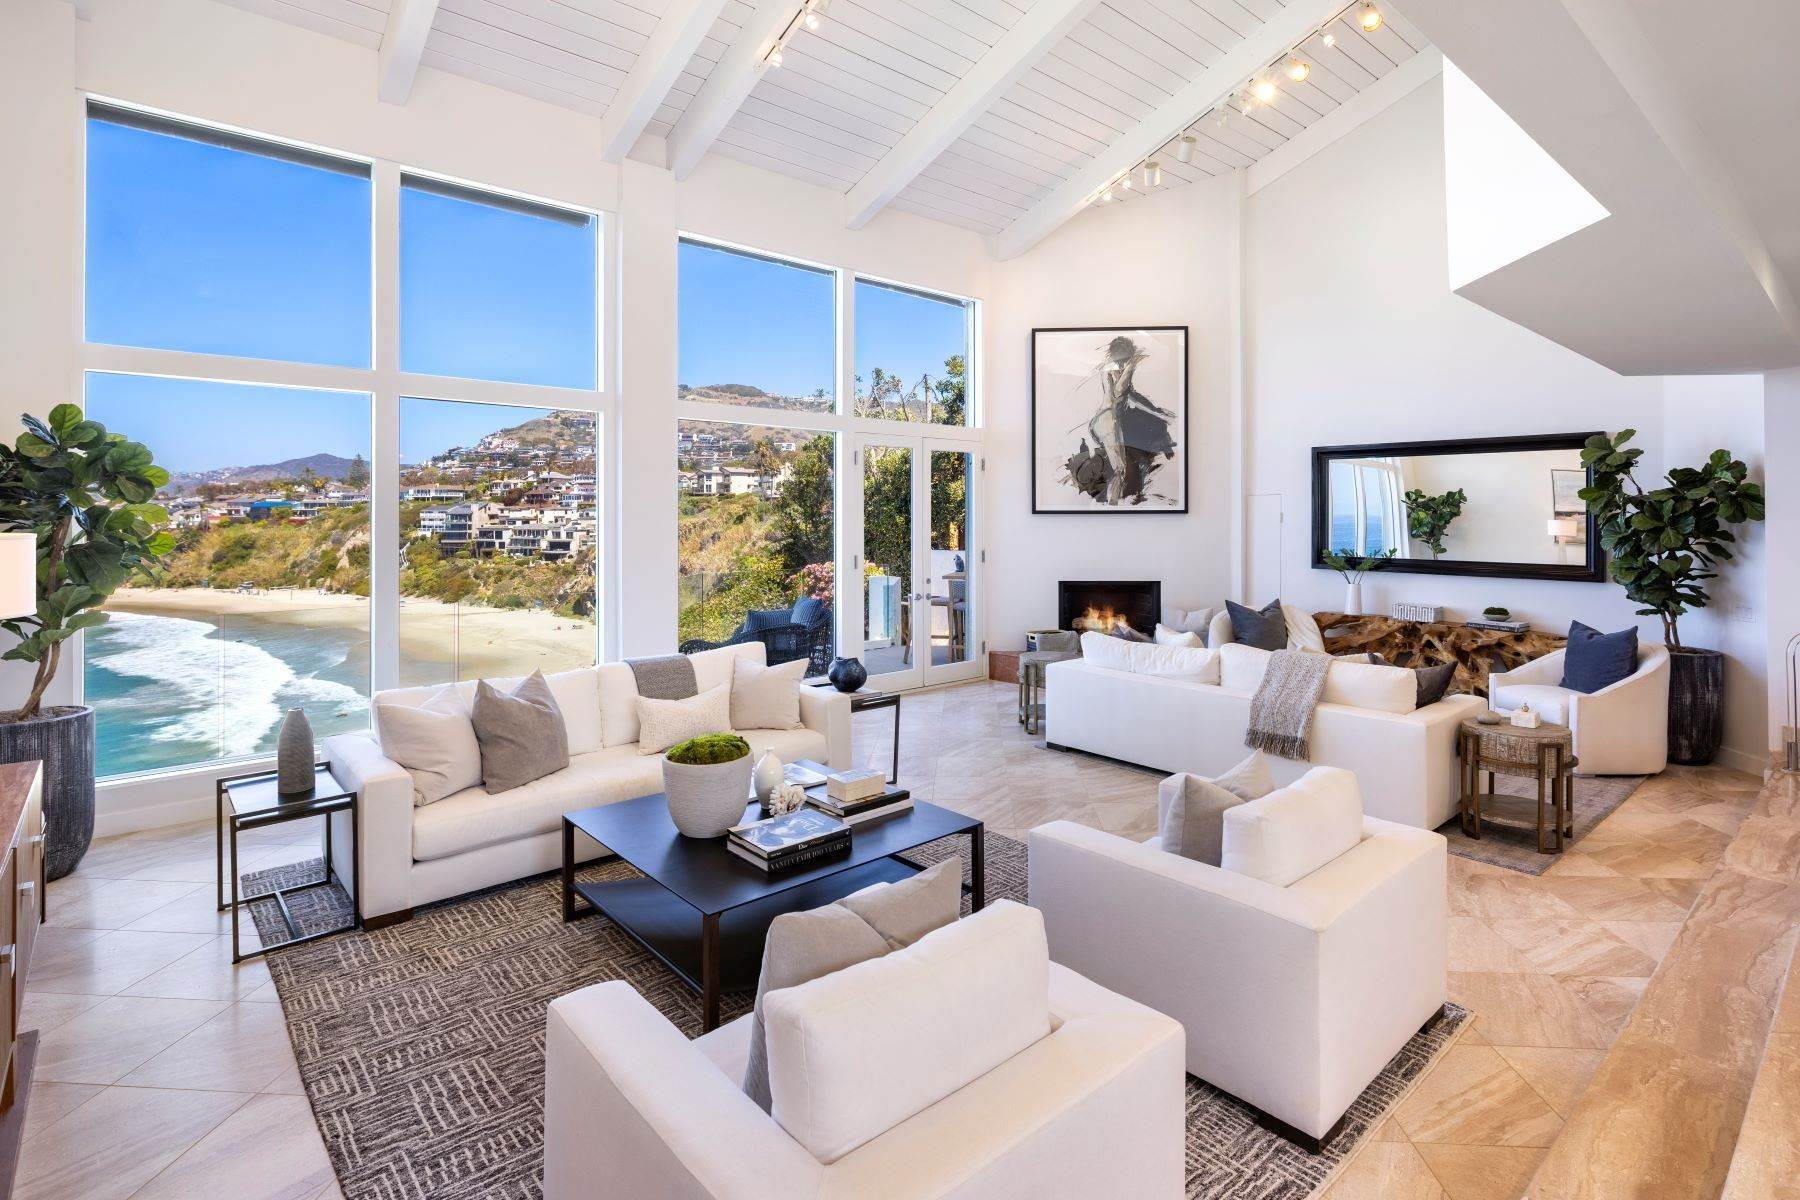 5. Single Family Homes for Sale at 112 South La Senda Drive, Laguna Beach, CA 92651 112 South La Senda Drive Laguna Beach, California 92651 United States